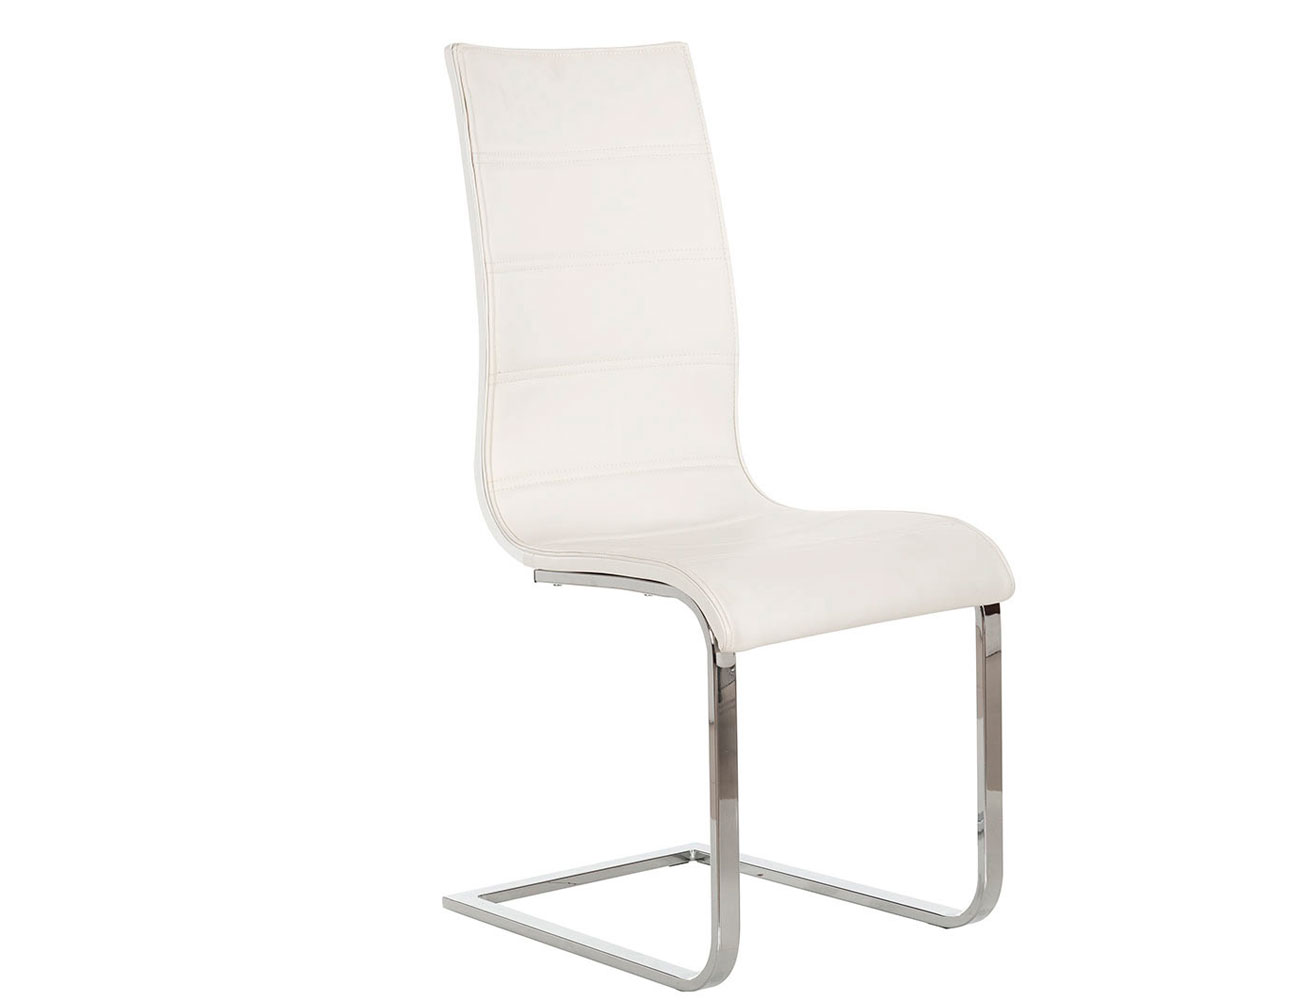 Silla polipiel rebote blanco brillo 4